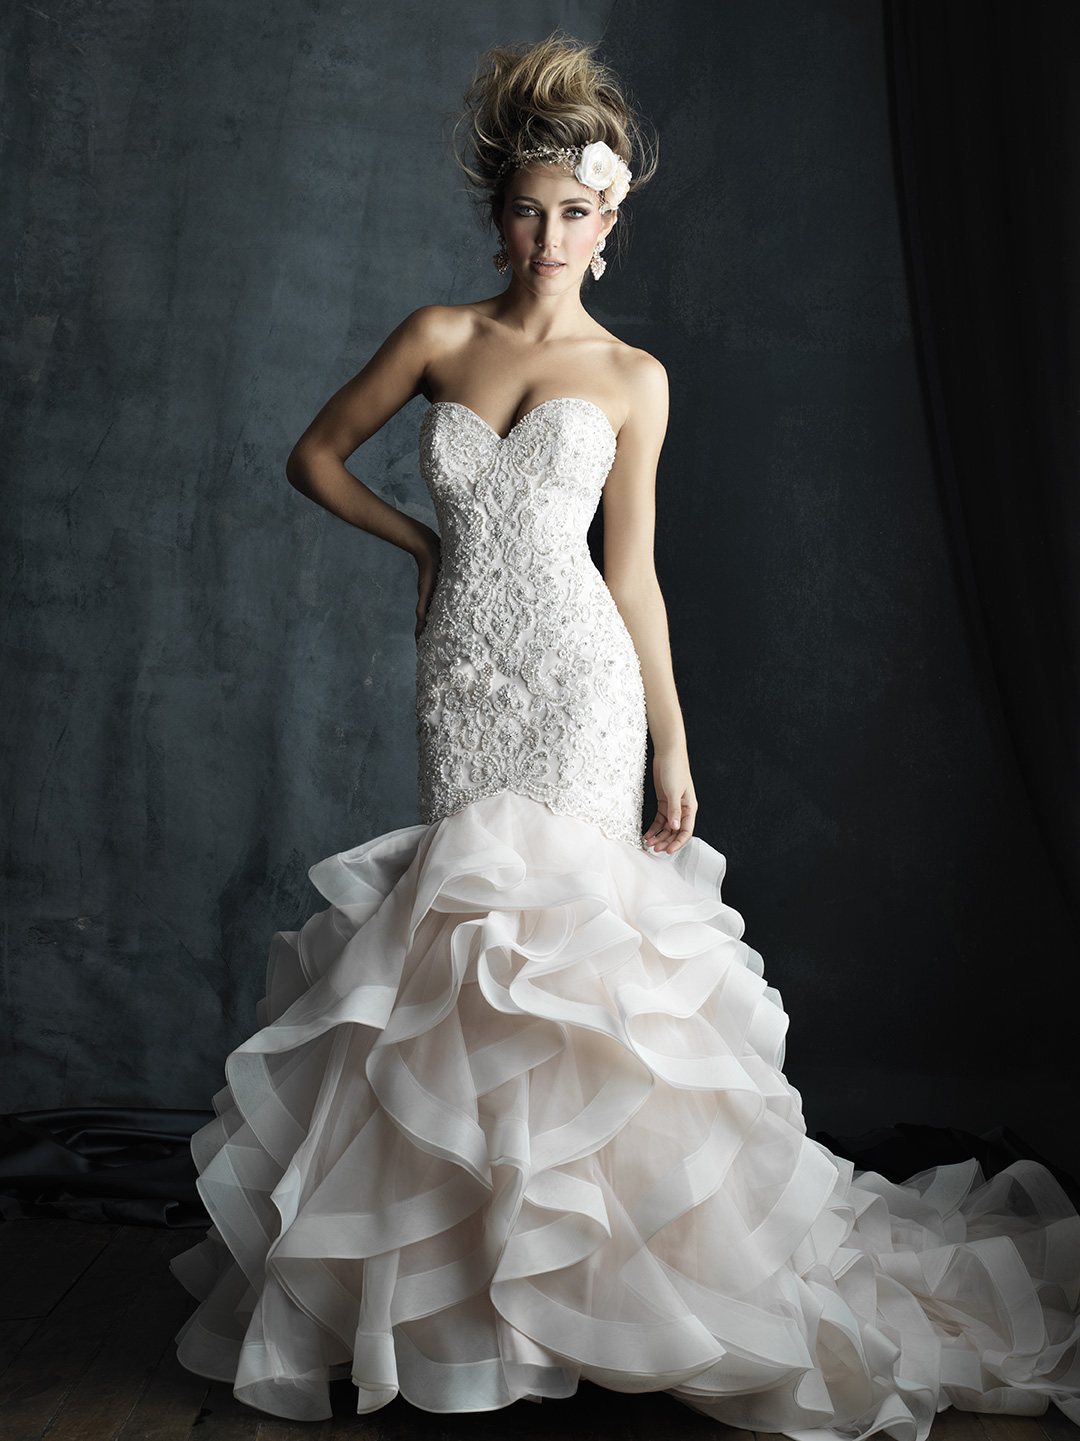 This ruffled gown hugs your curves and sparkles with intricate Swarovski beadwork.